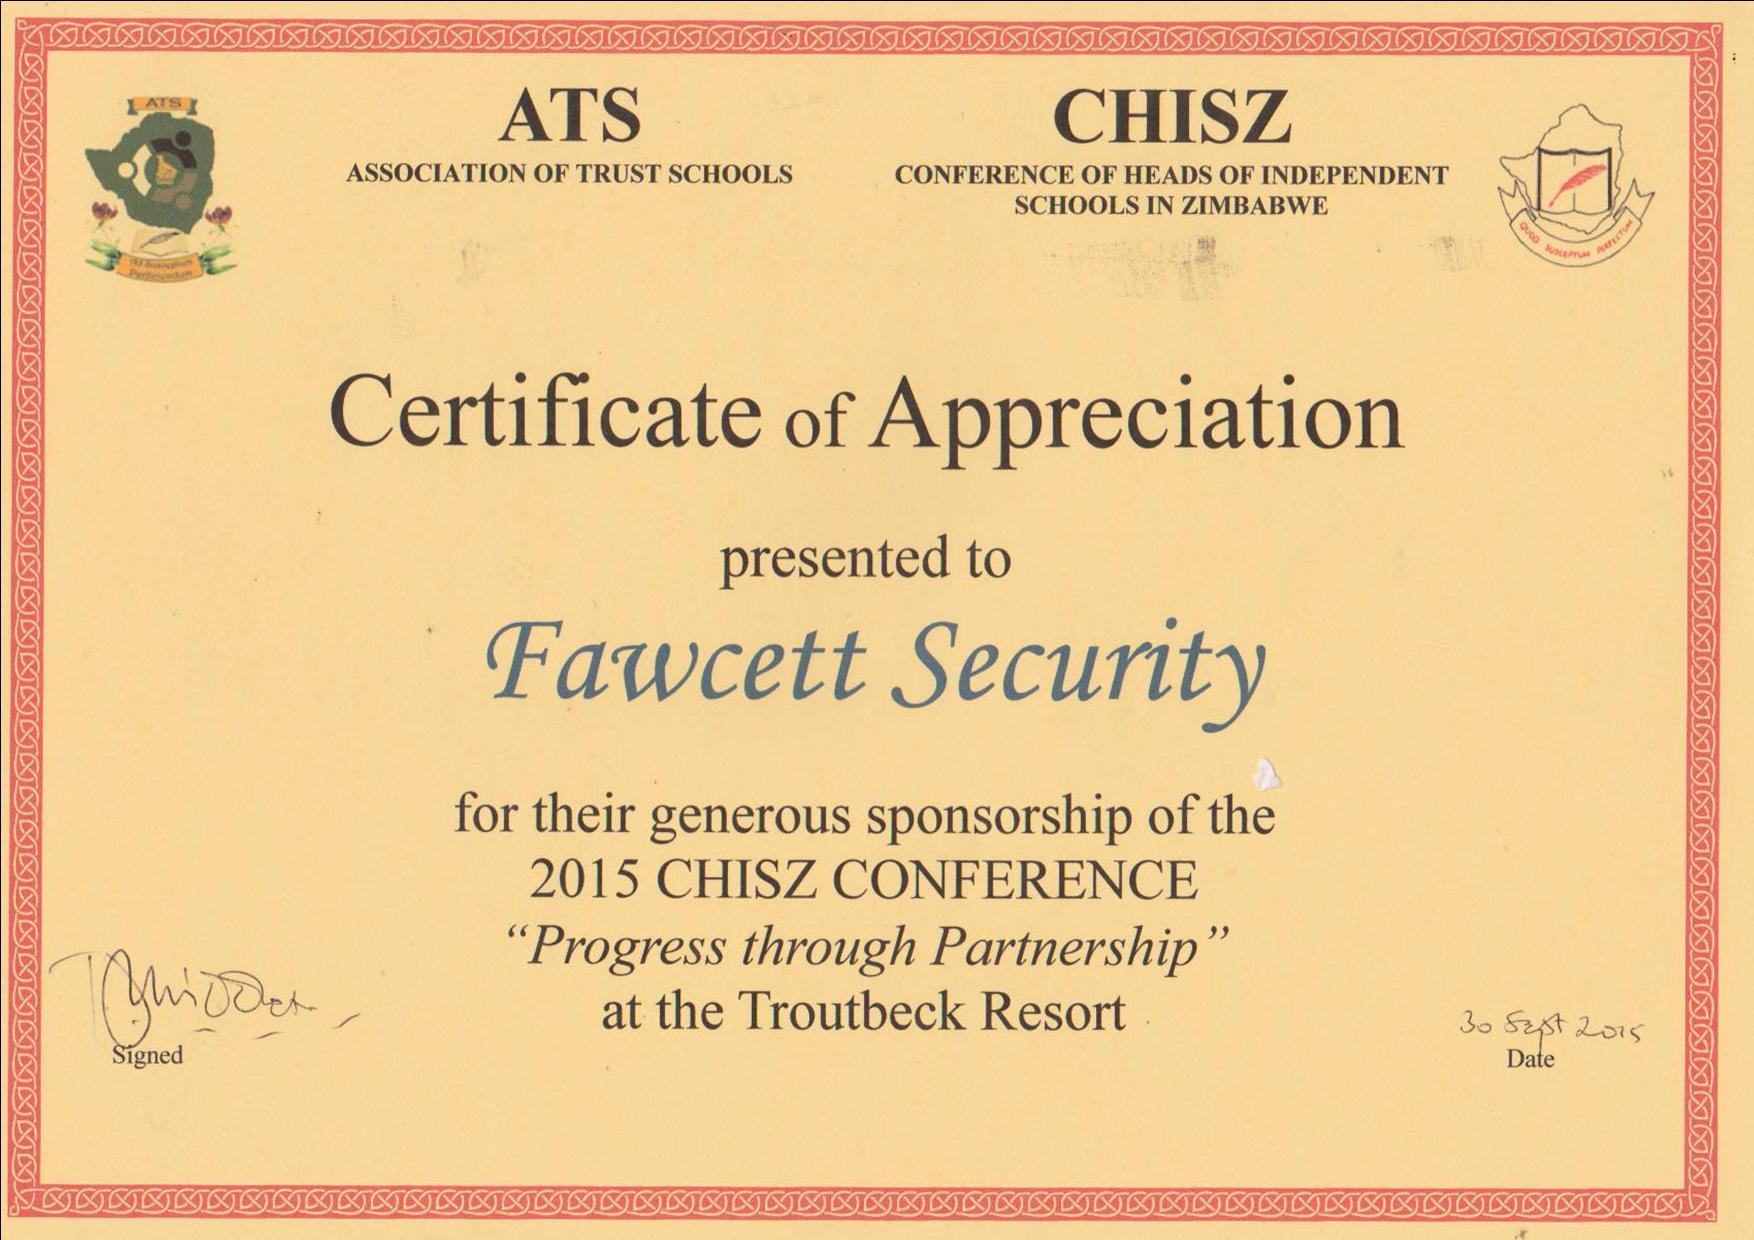 Conference of heads of independent schools in zimbabwe chisz certificate of appreciation awarded to fawcett security on the 1st of october 2015 by conference of heads of independent schools in zimbabwe chisz yelopaper Choice Image